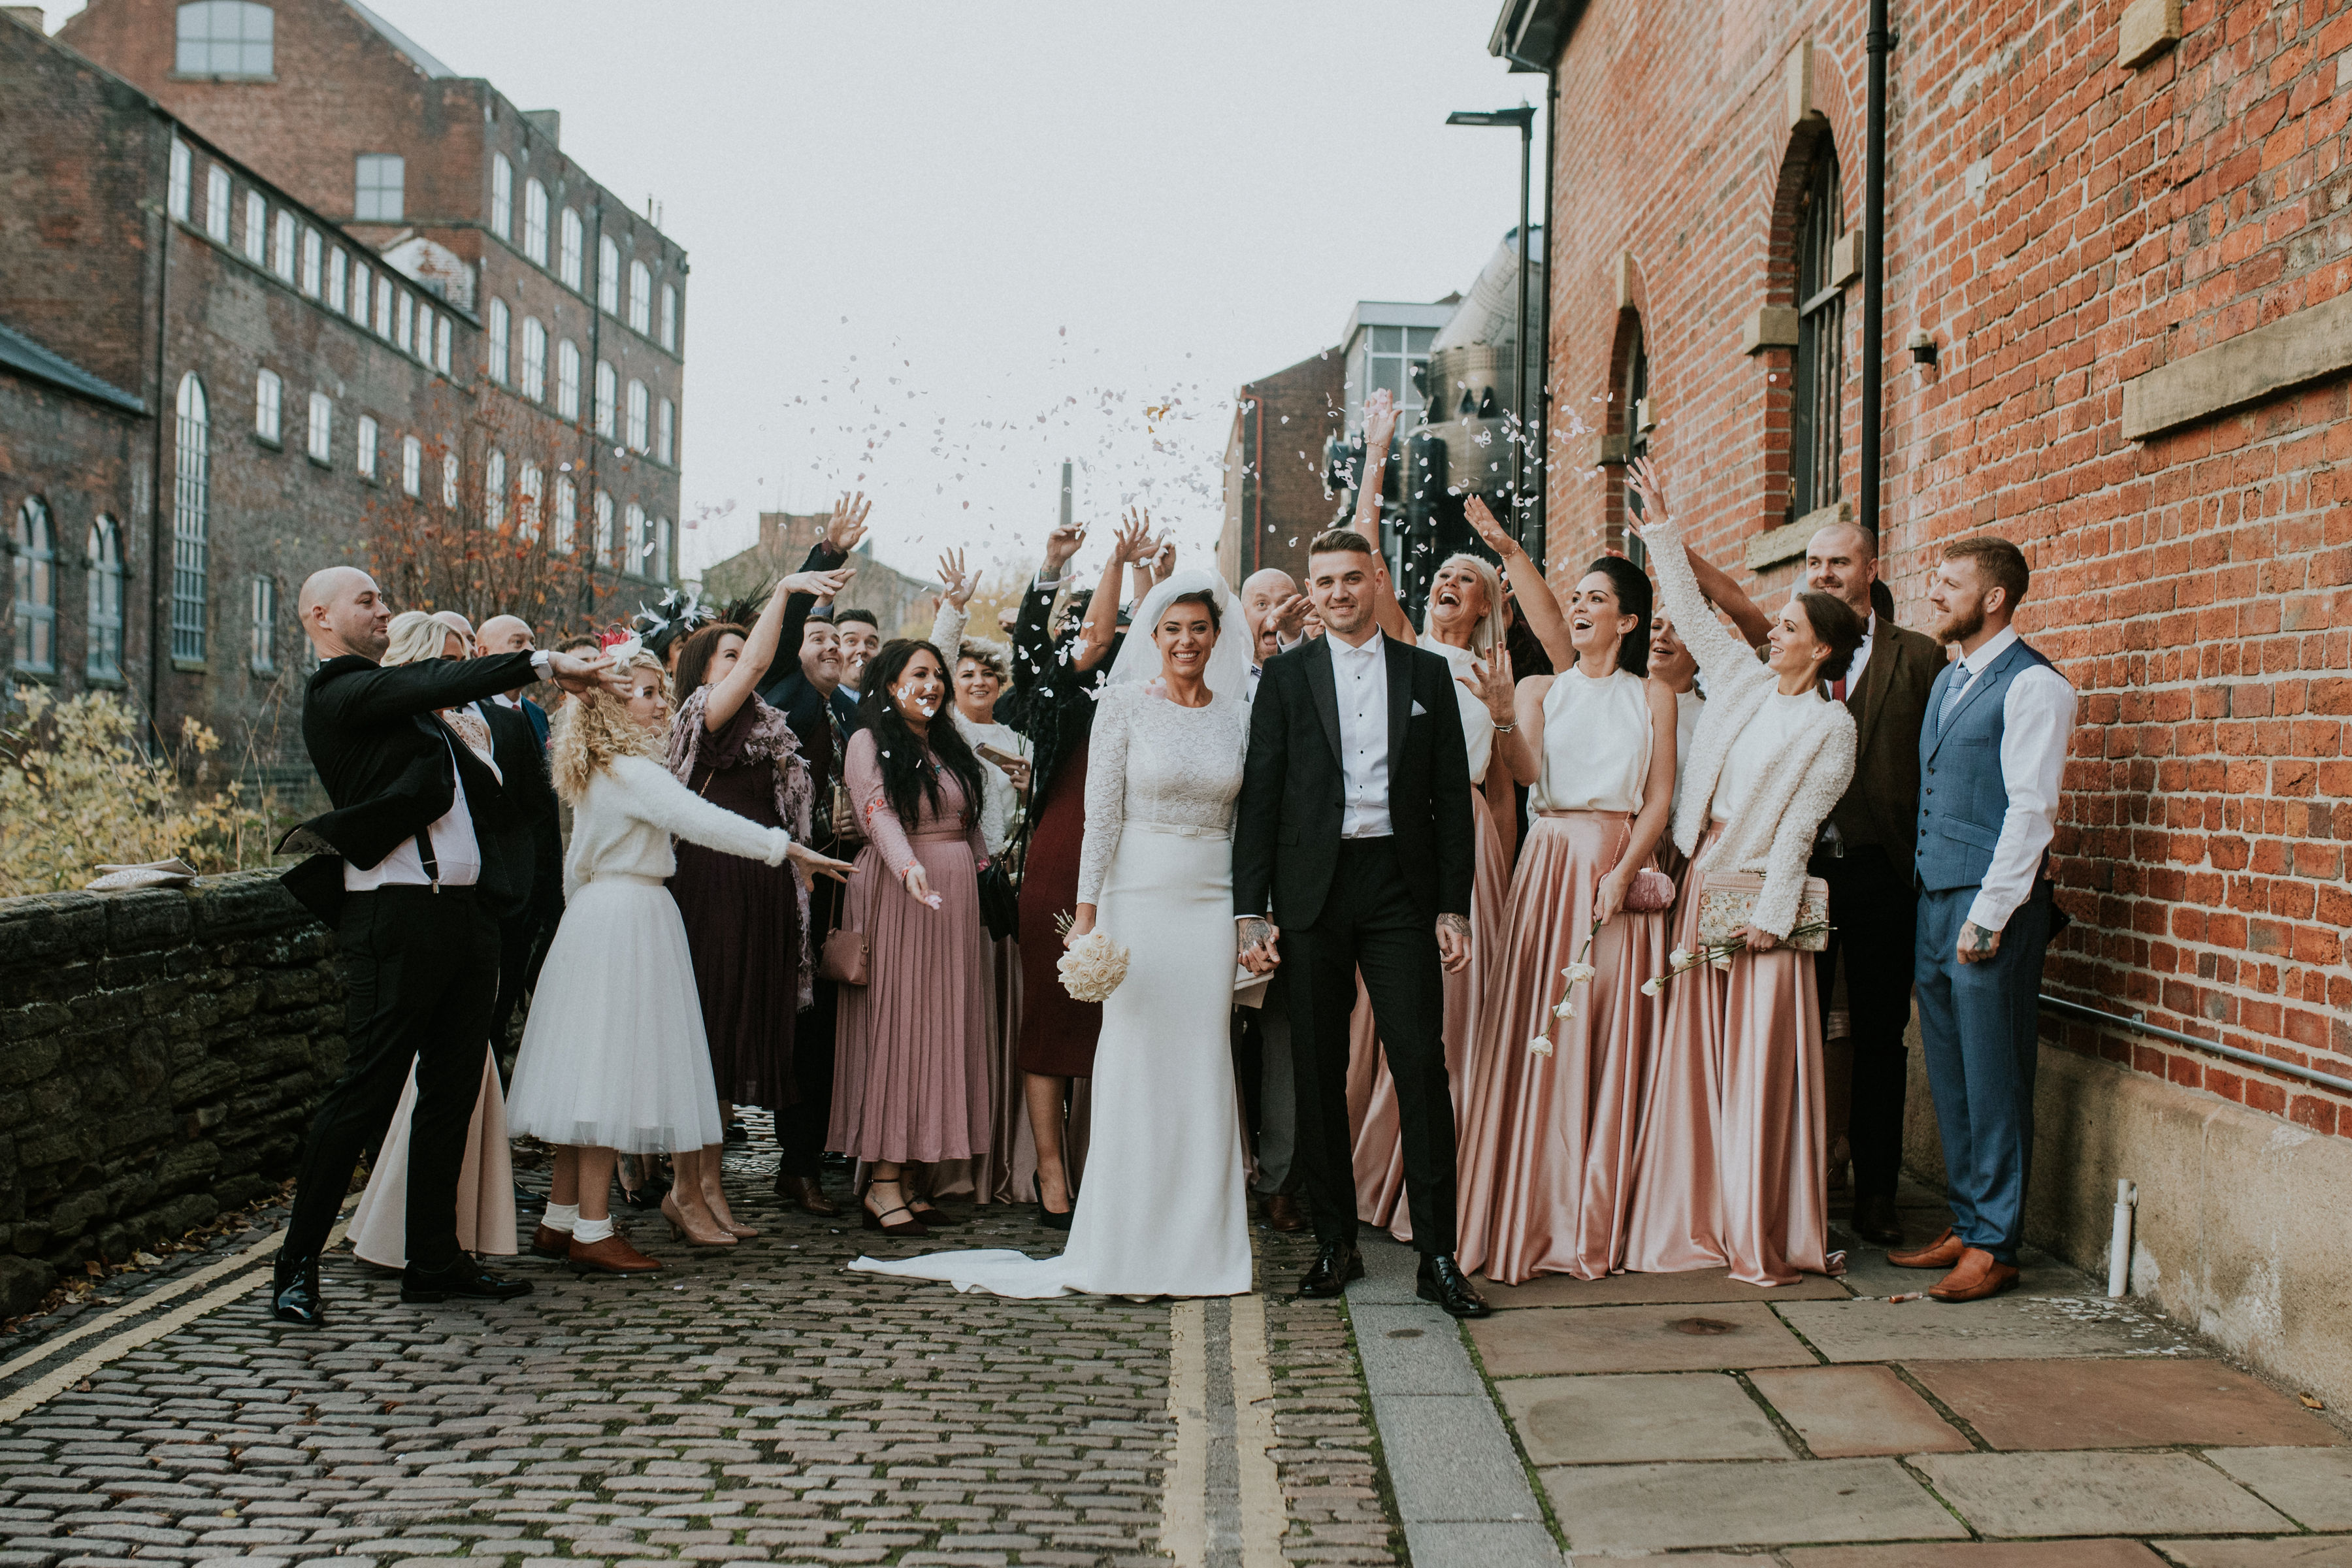 Marriages and Civil Partnerships at The Chimney House, Sheffield - Image 1